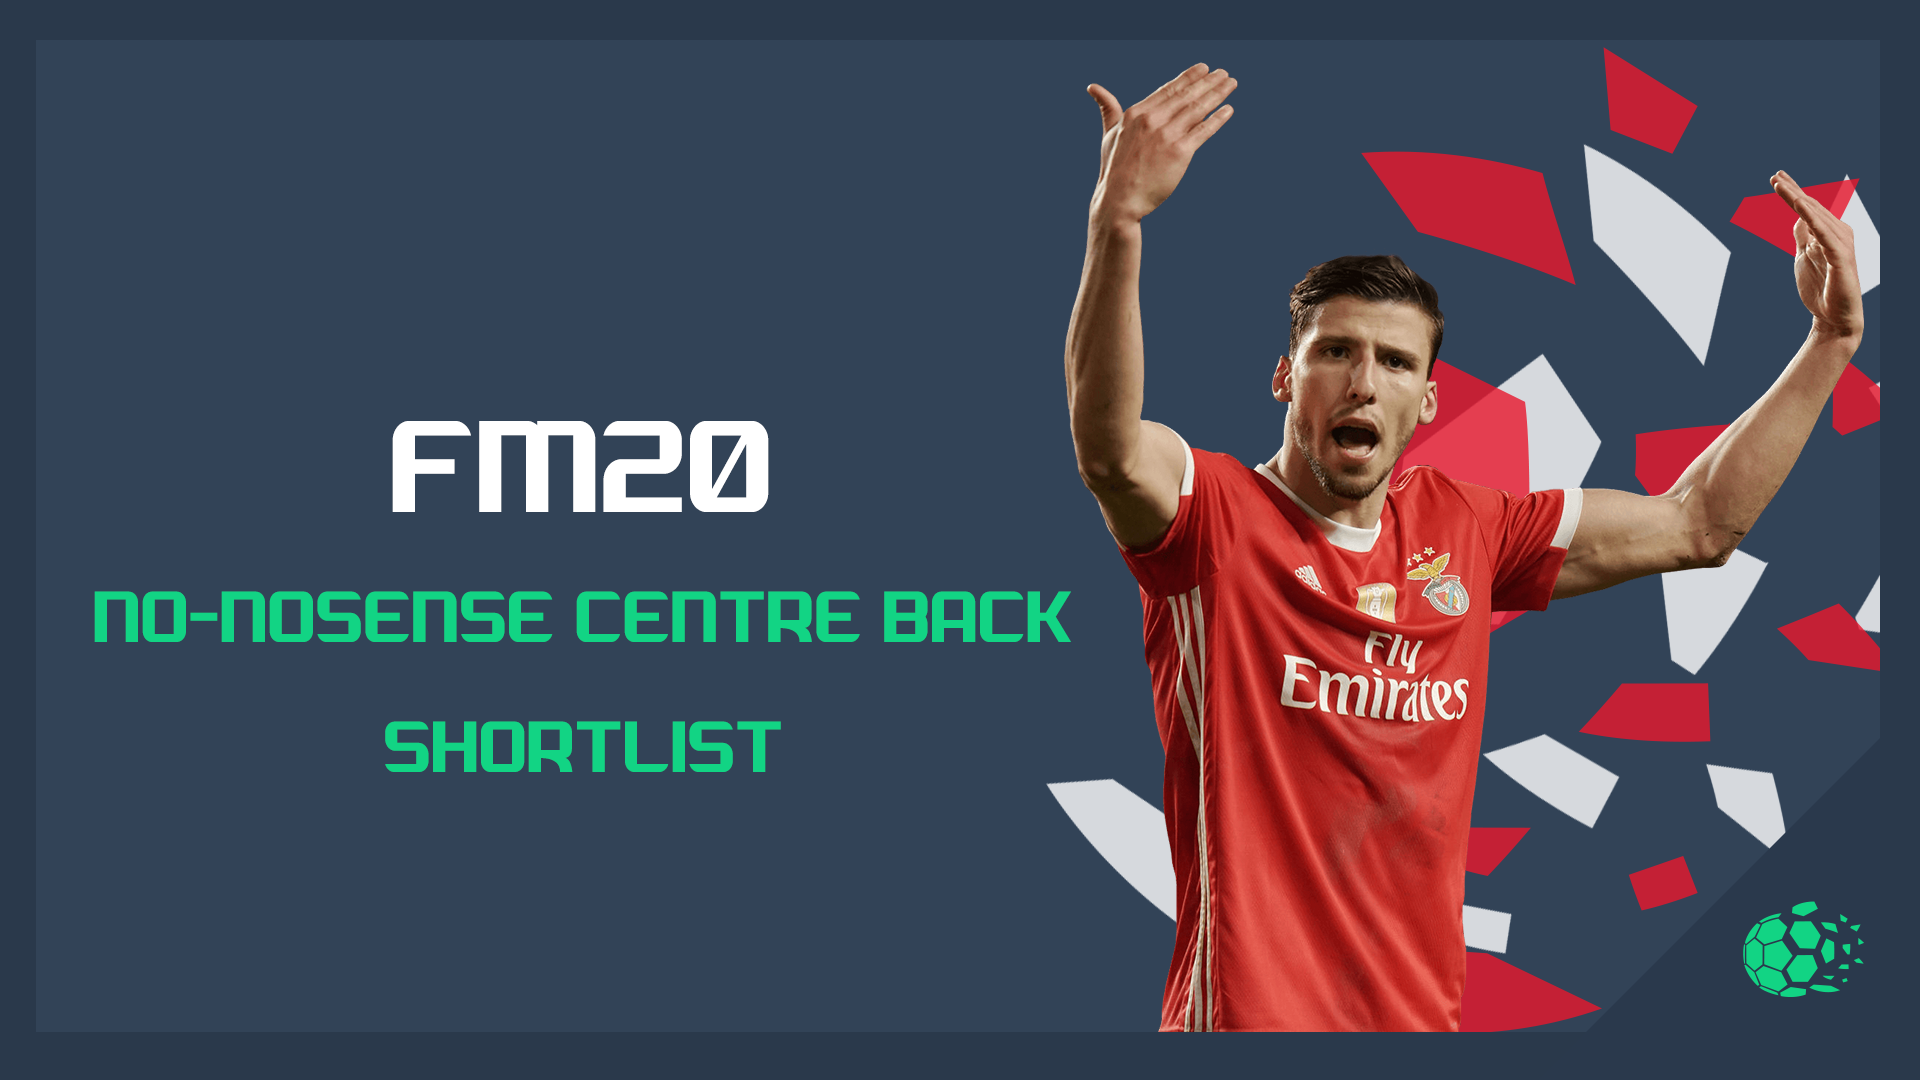 """FM20 FM20 - No-Nonsense Centre Back Shortlist"" feature image"